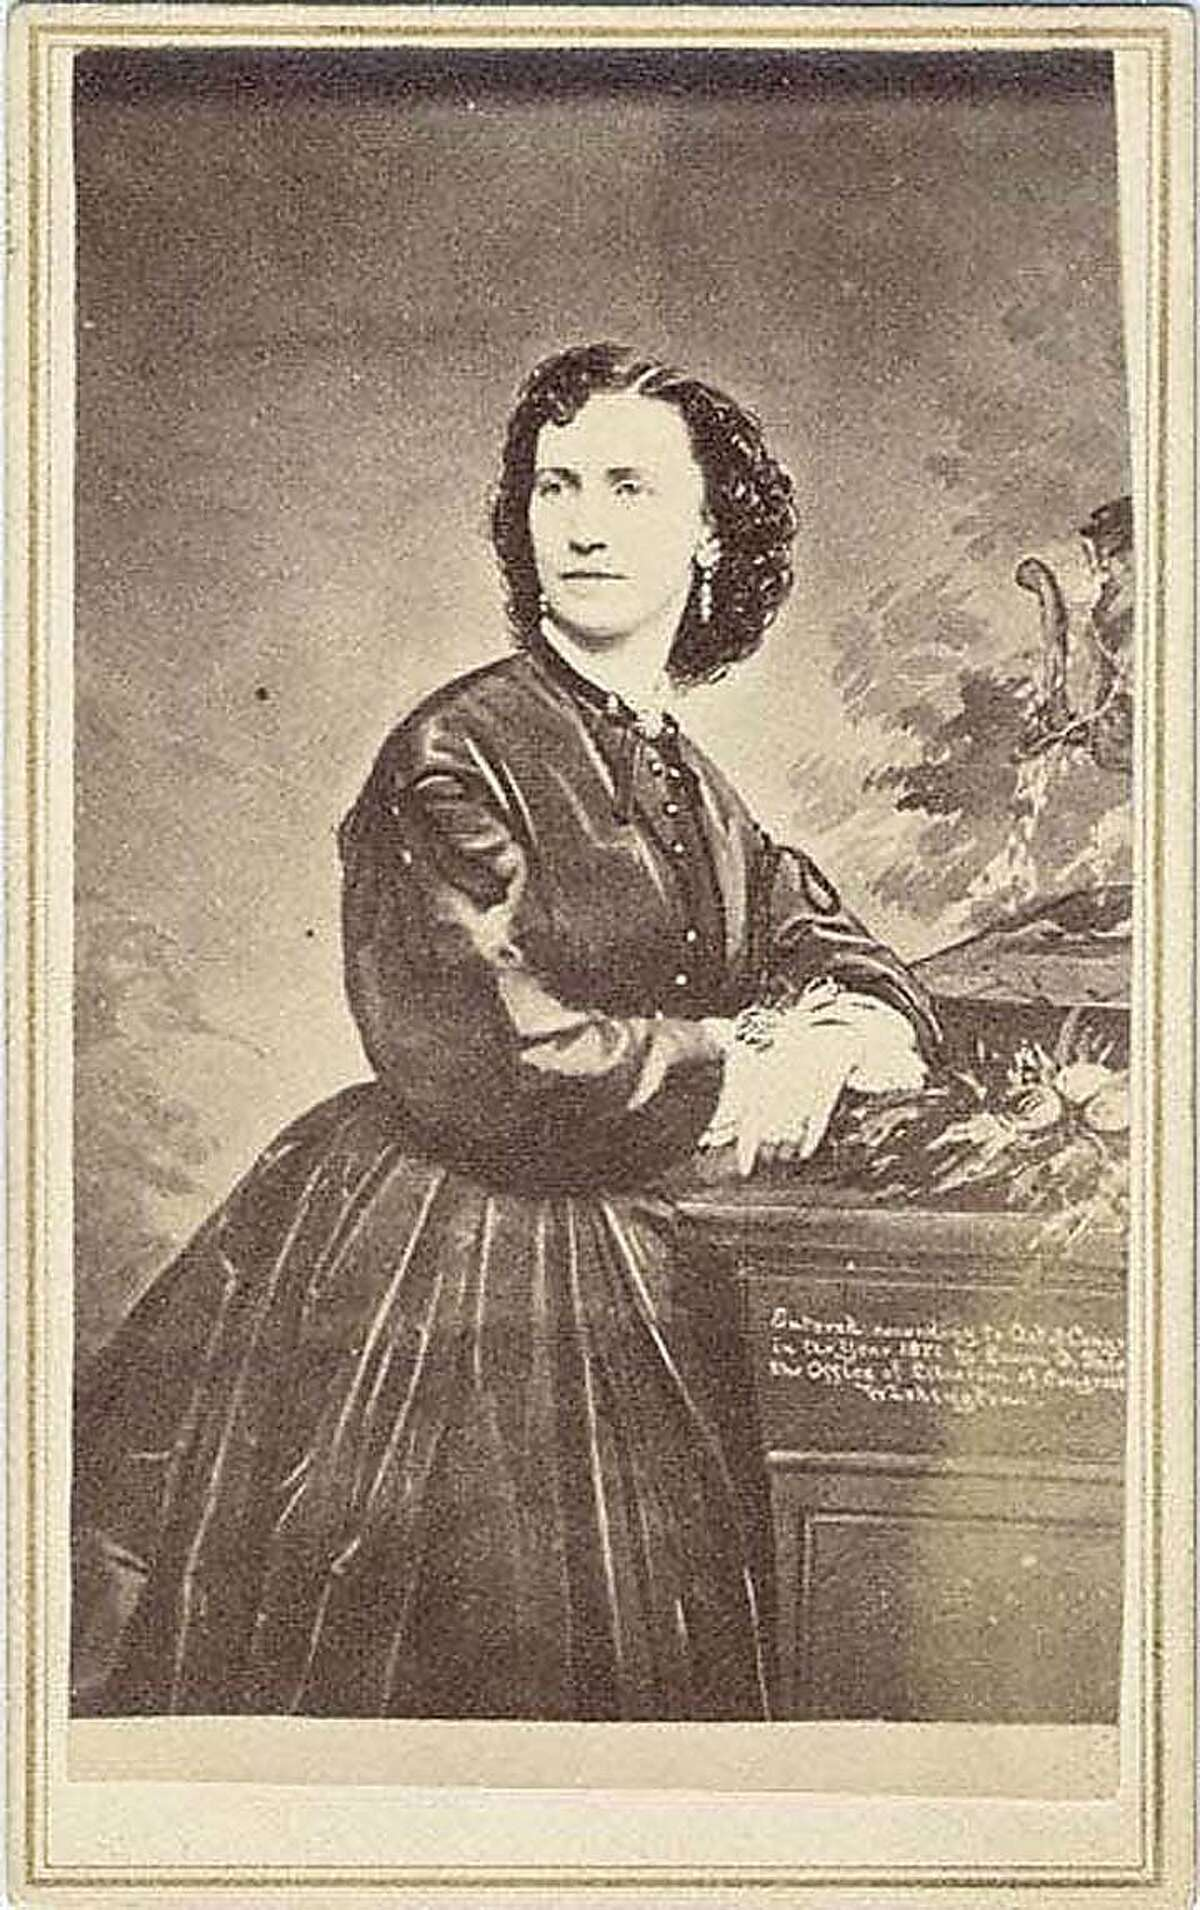 Laura Fair, mistress of Alexander Parker Crittenden, shot and killed him aboard the ferry boat El Capitan in 1870. Used with permission for on-line and print, Courtesy University of Nevada, Reno. Laura Fair, mistress of Alexander Parker Crittenden, shot and killed him aboard the ferry boat El Capitan in 1870.